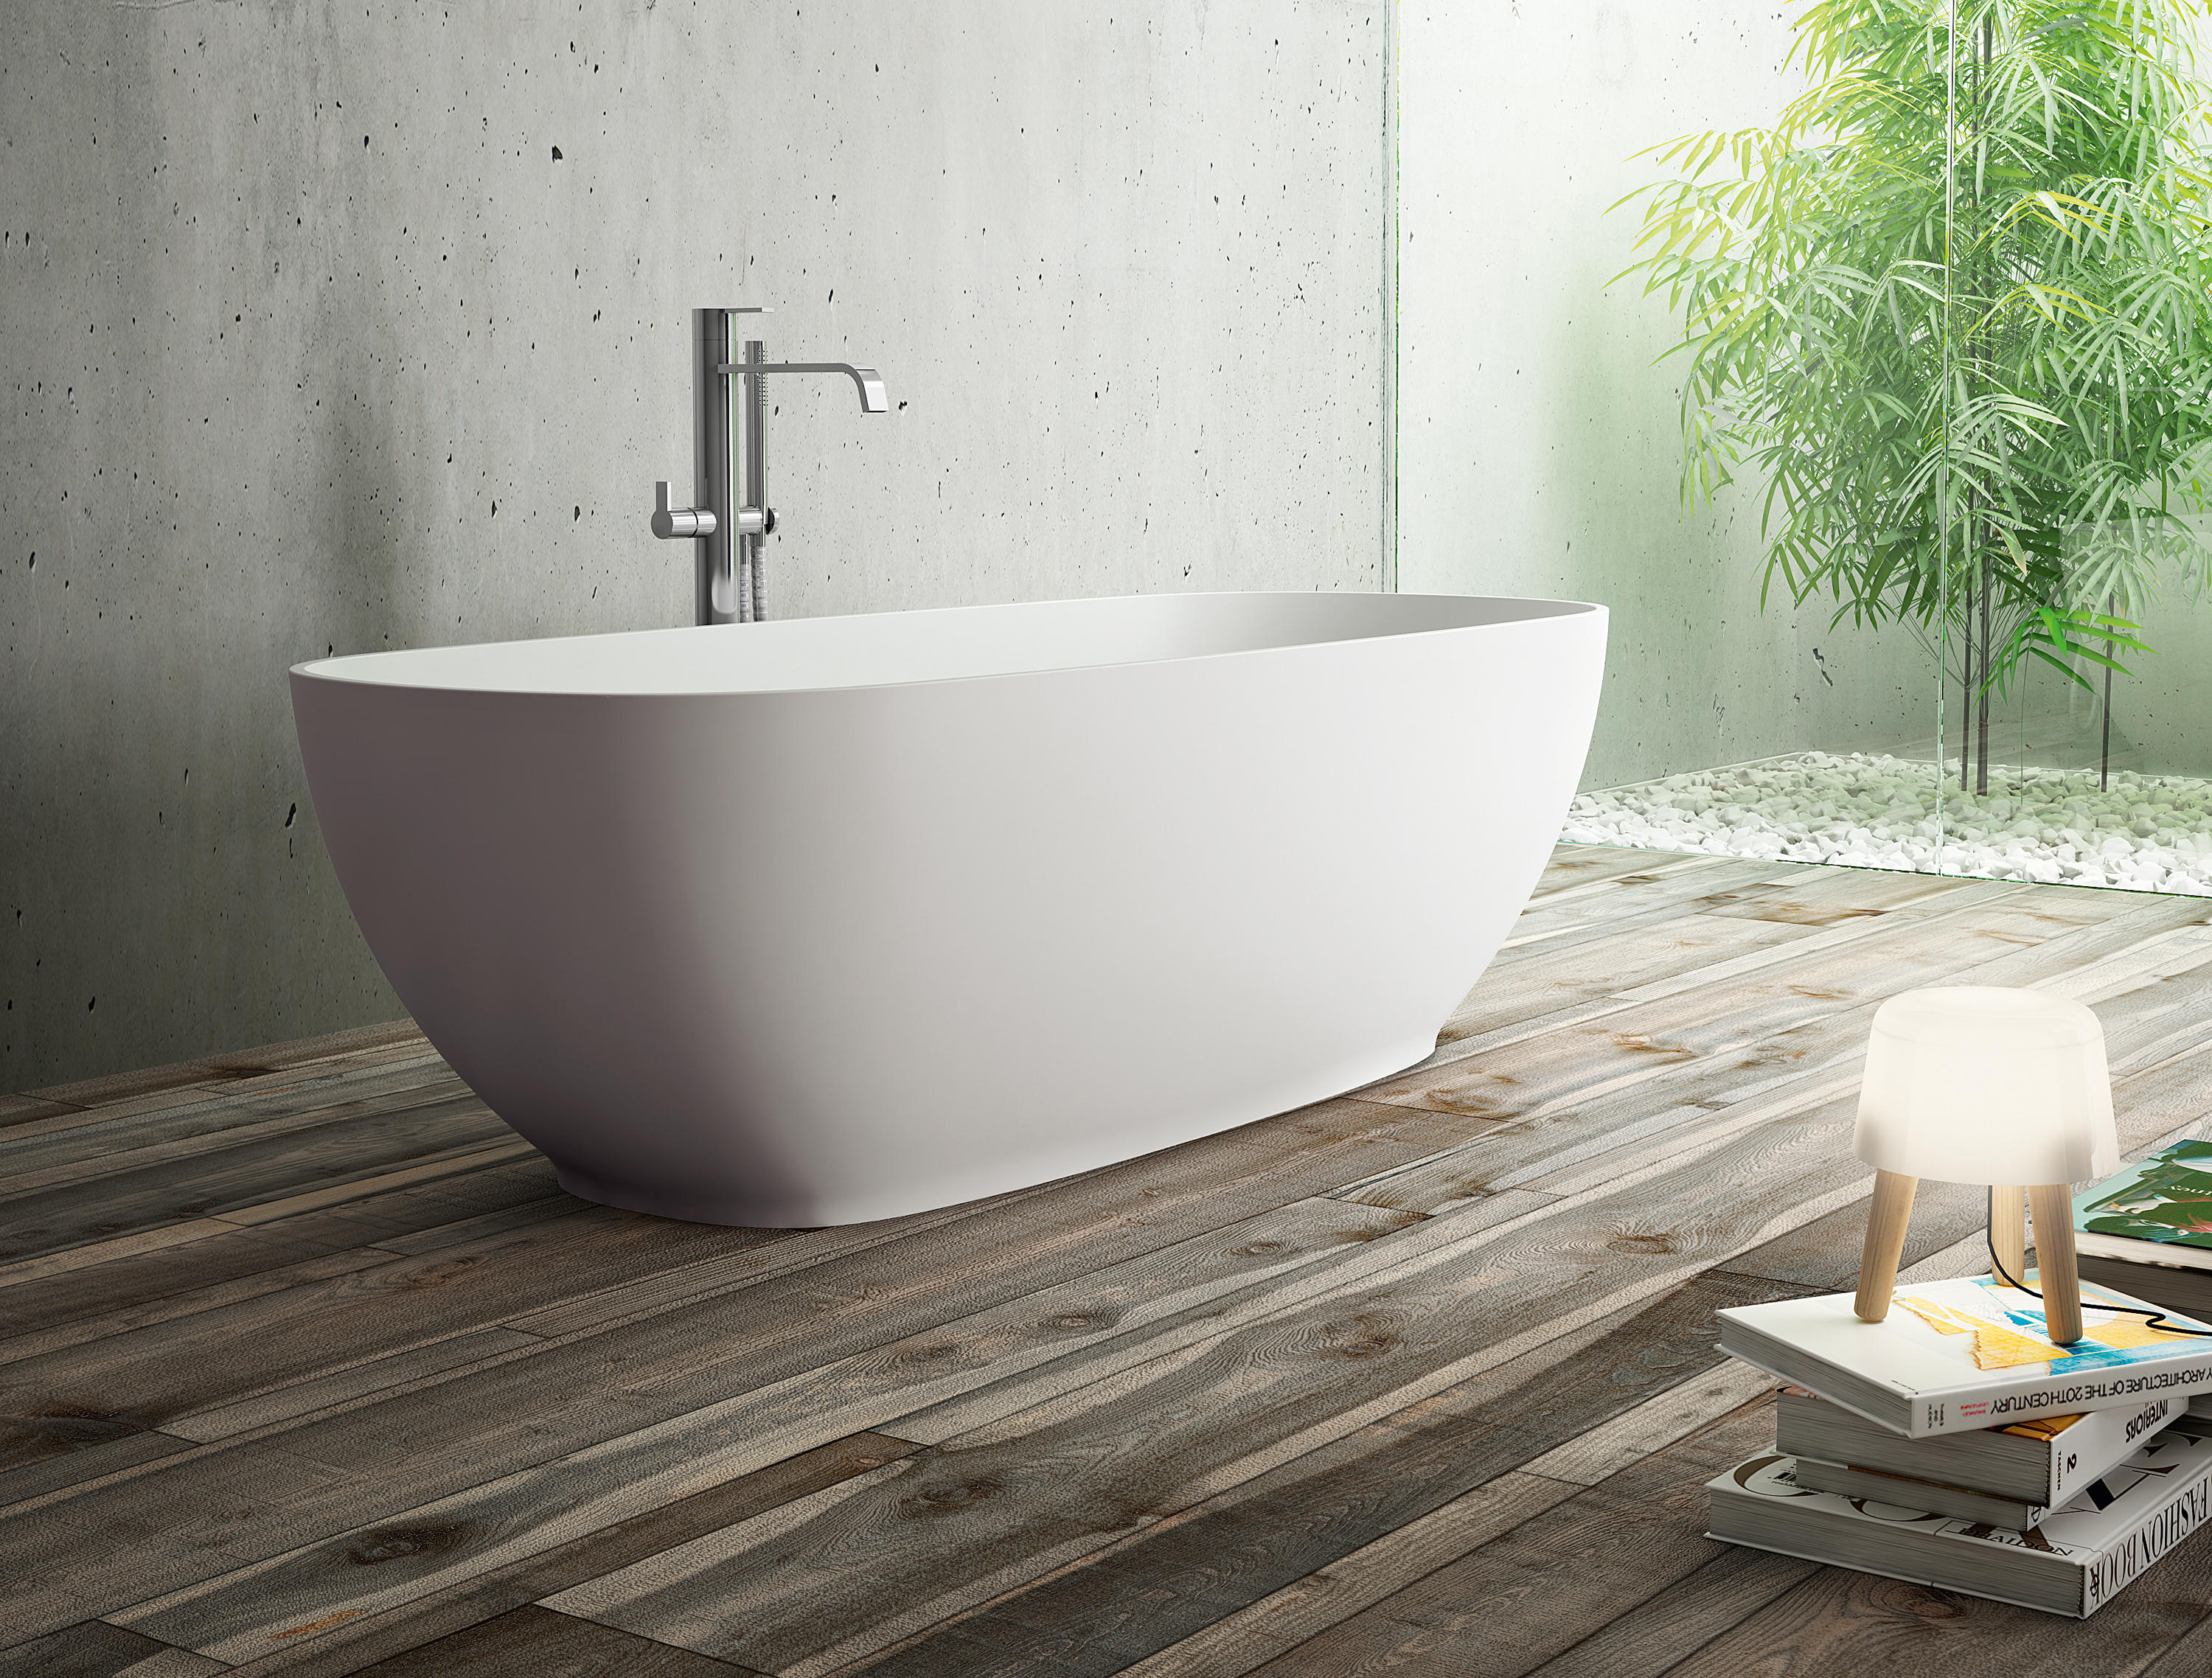 Bagno Moderno Con Vasca Da Incasso : Oval freestanding vasche idea group architonic